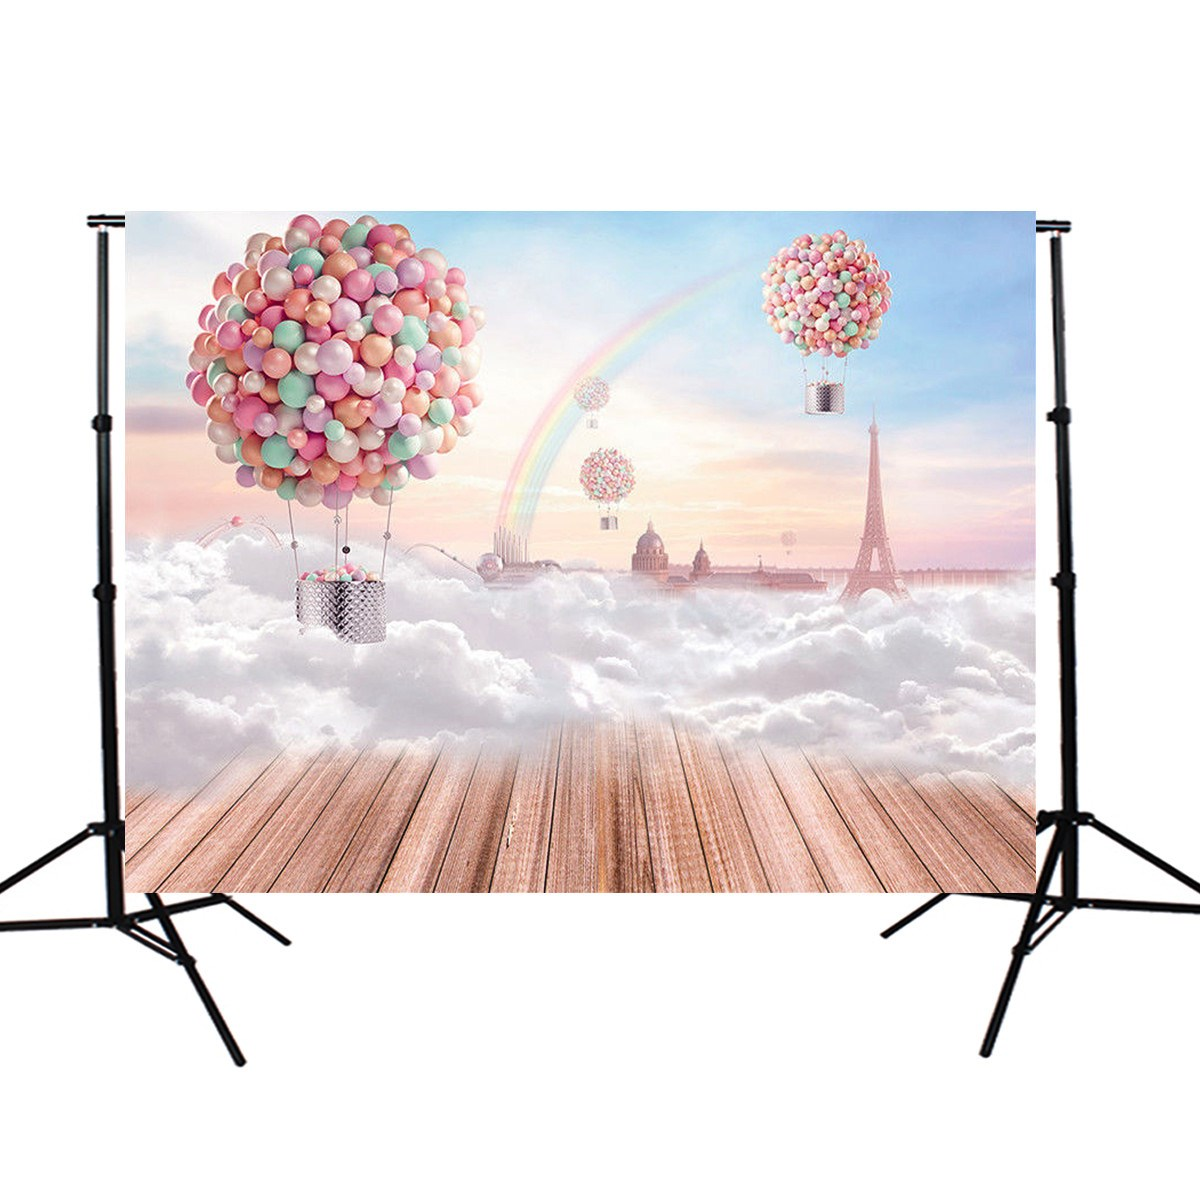 7x5ft Backdrop Balloon Board Rainbow Photography Background Backdrop cloth Studio Photo Props Durable 2.1x1.5m light weight fabric birthday party backdrop balloon and paper craft photography backdrop for photo studio photography background s 2132 c